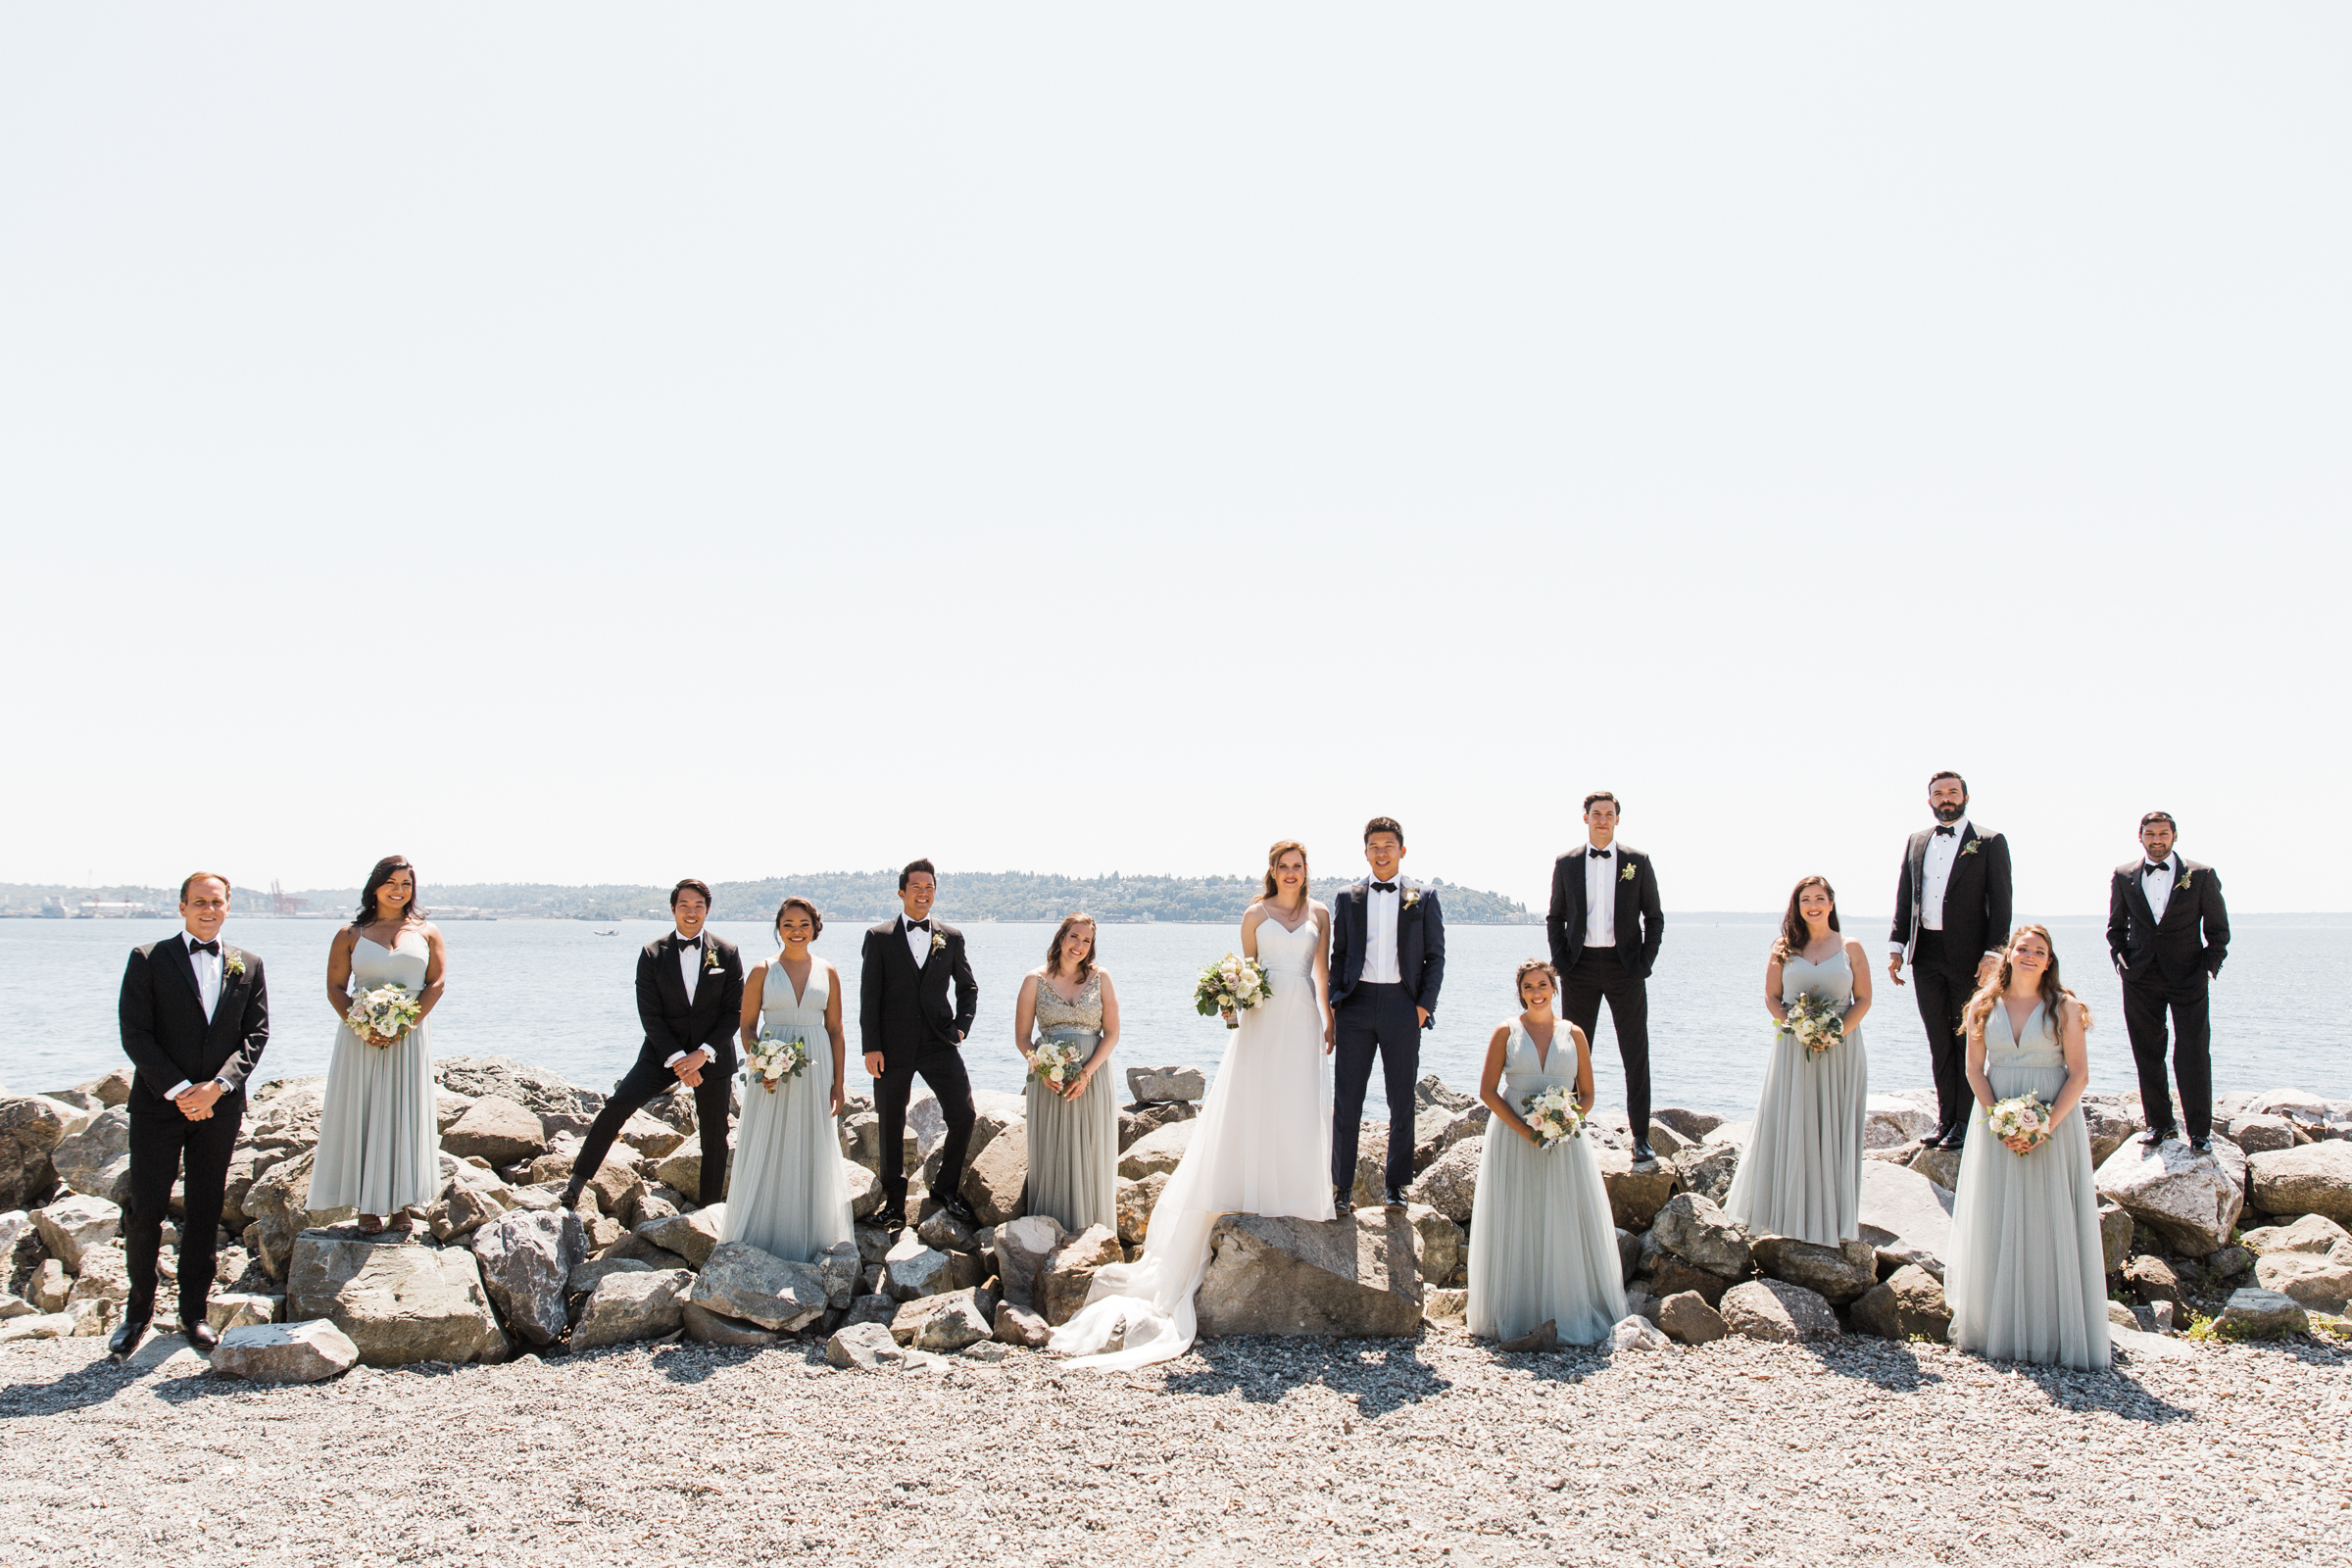 Bridal party portrait on West Seattle beach - photo by Stephanie Cristalli Photography